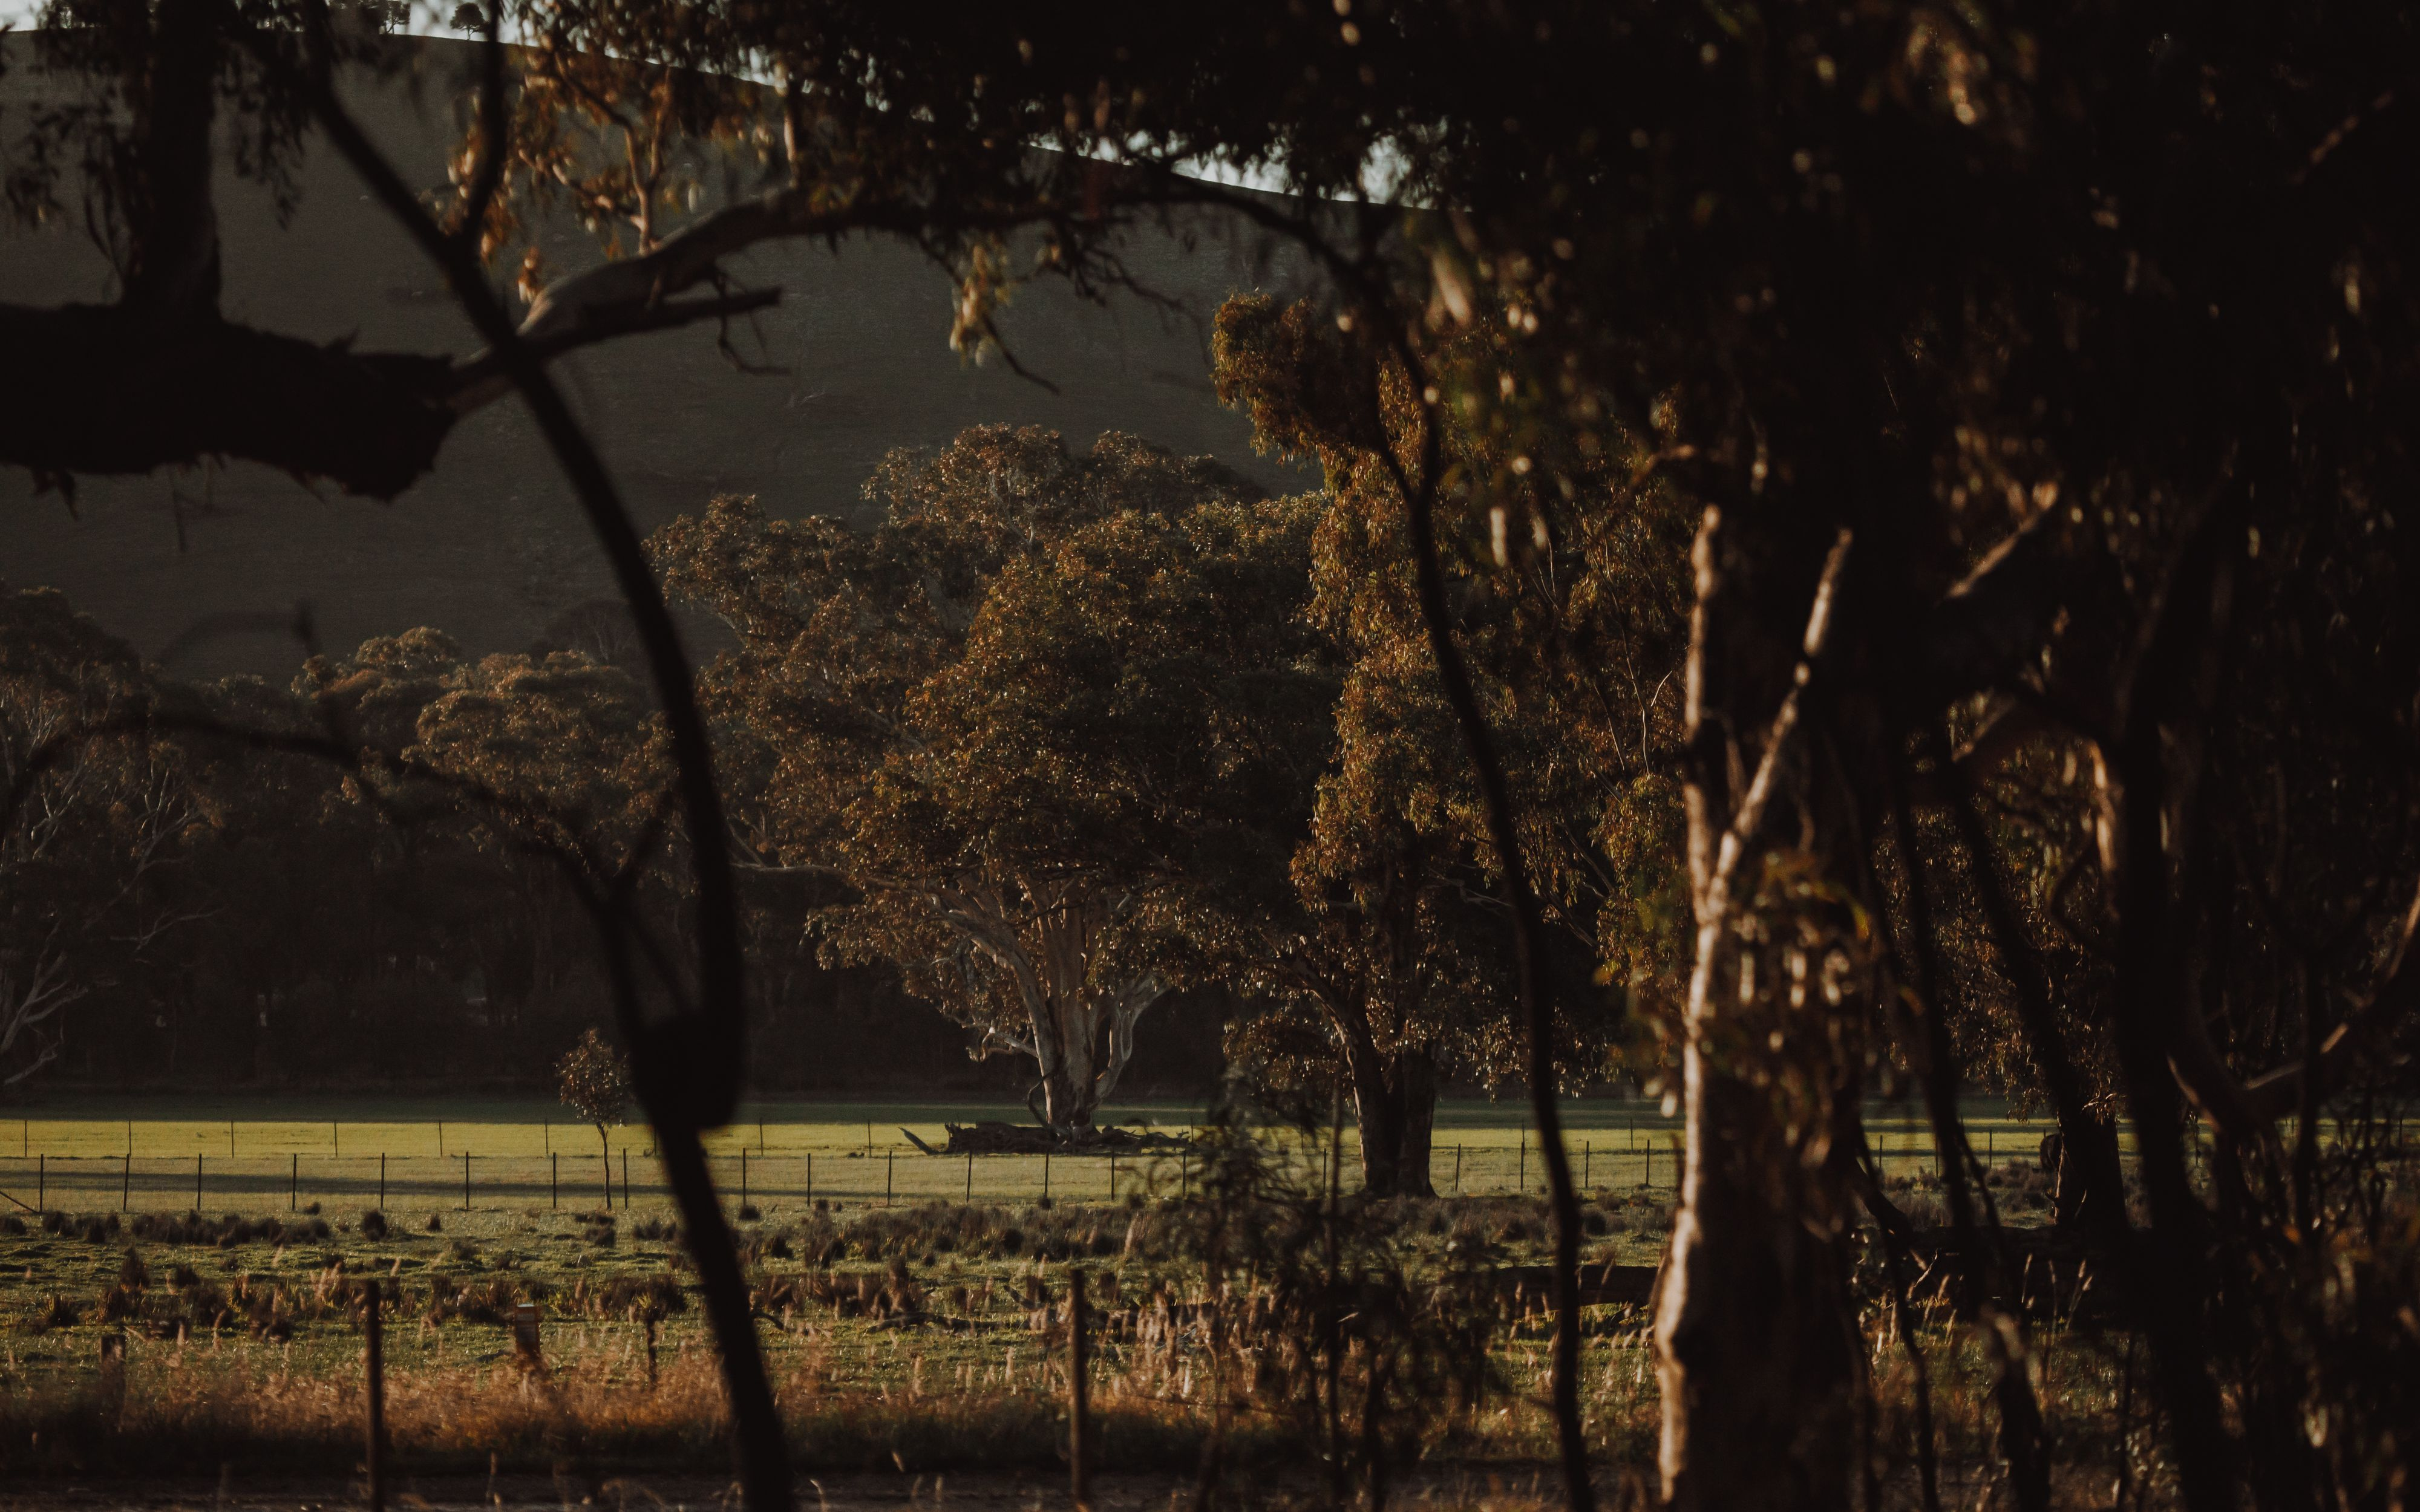 :andscape scene of large gum trees in Upper Murray Valley, NSW